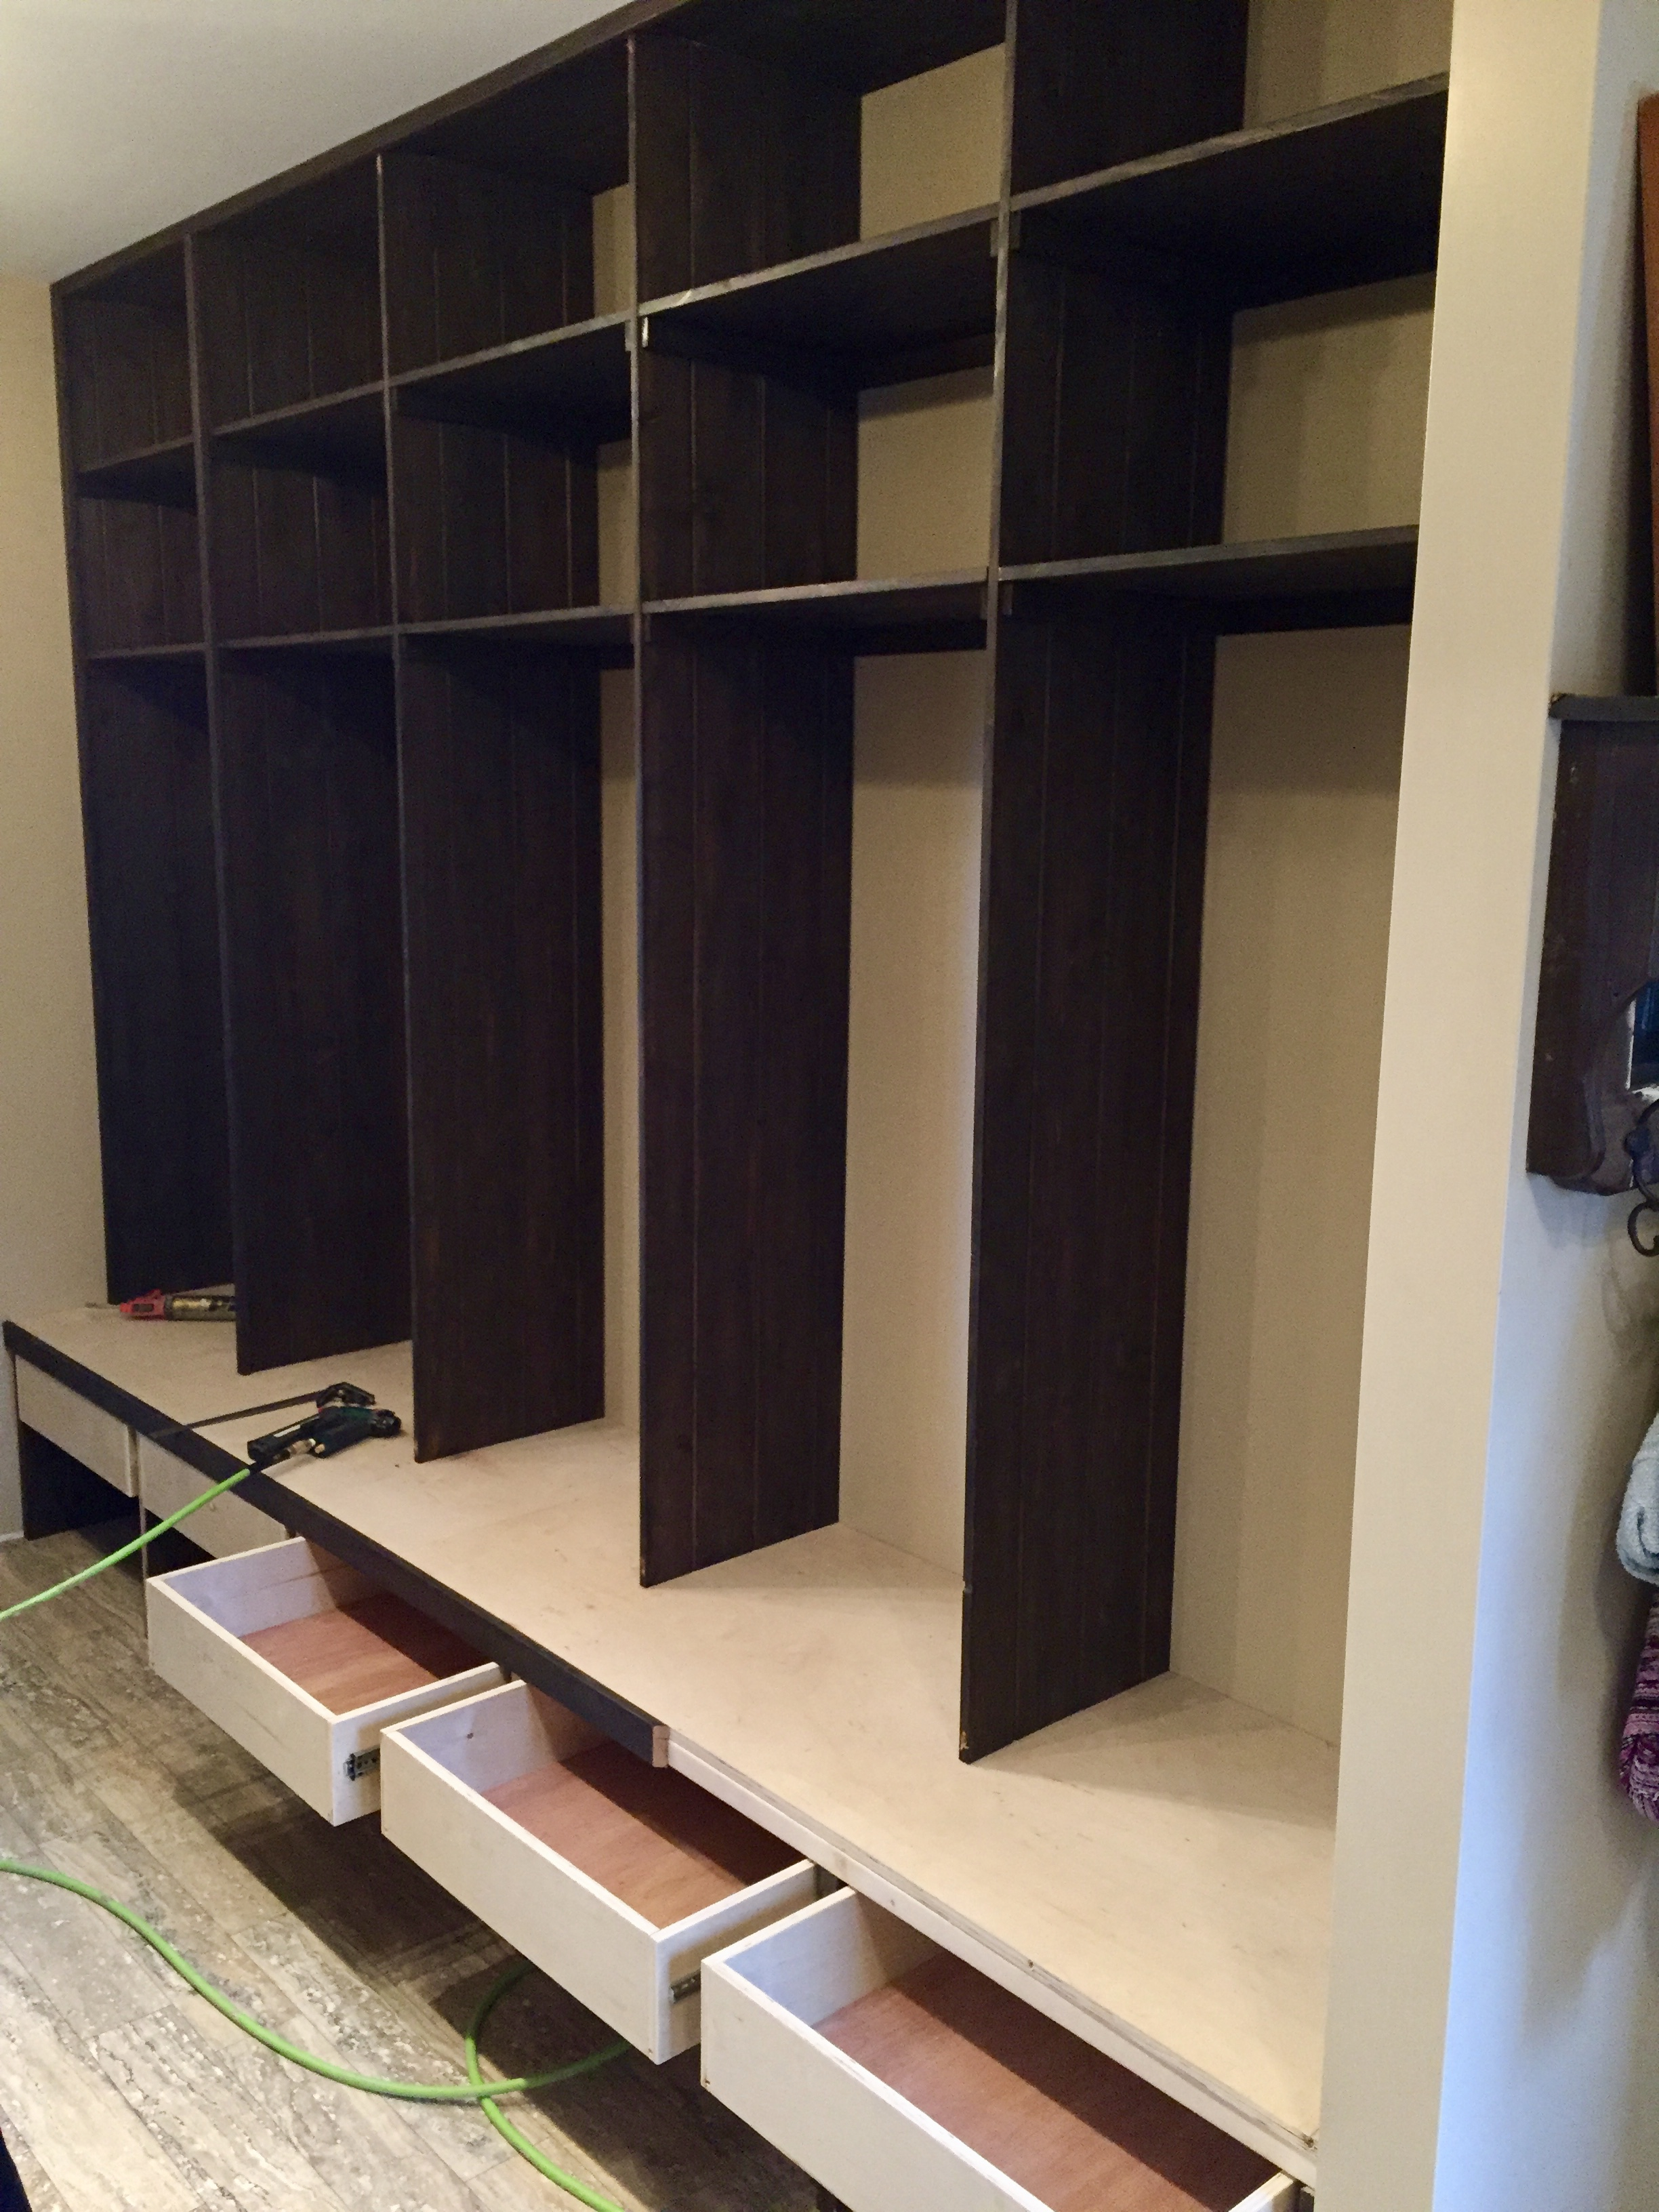 Mud room lockers - tongue and groove